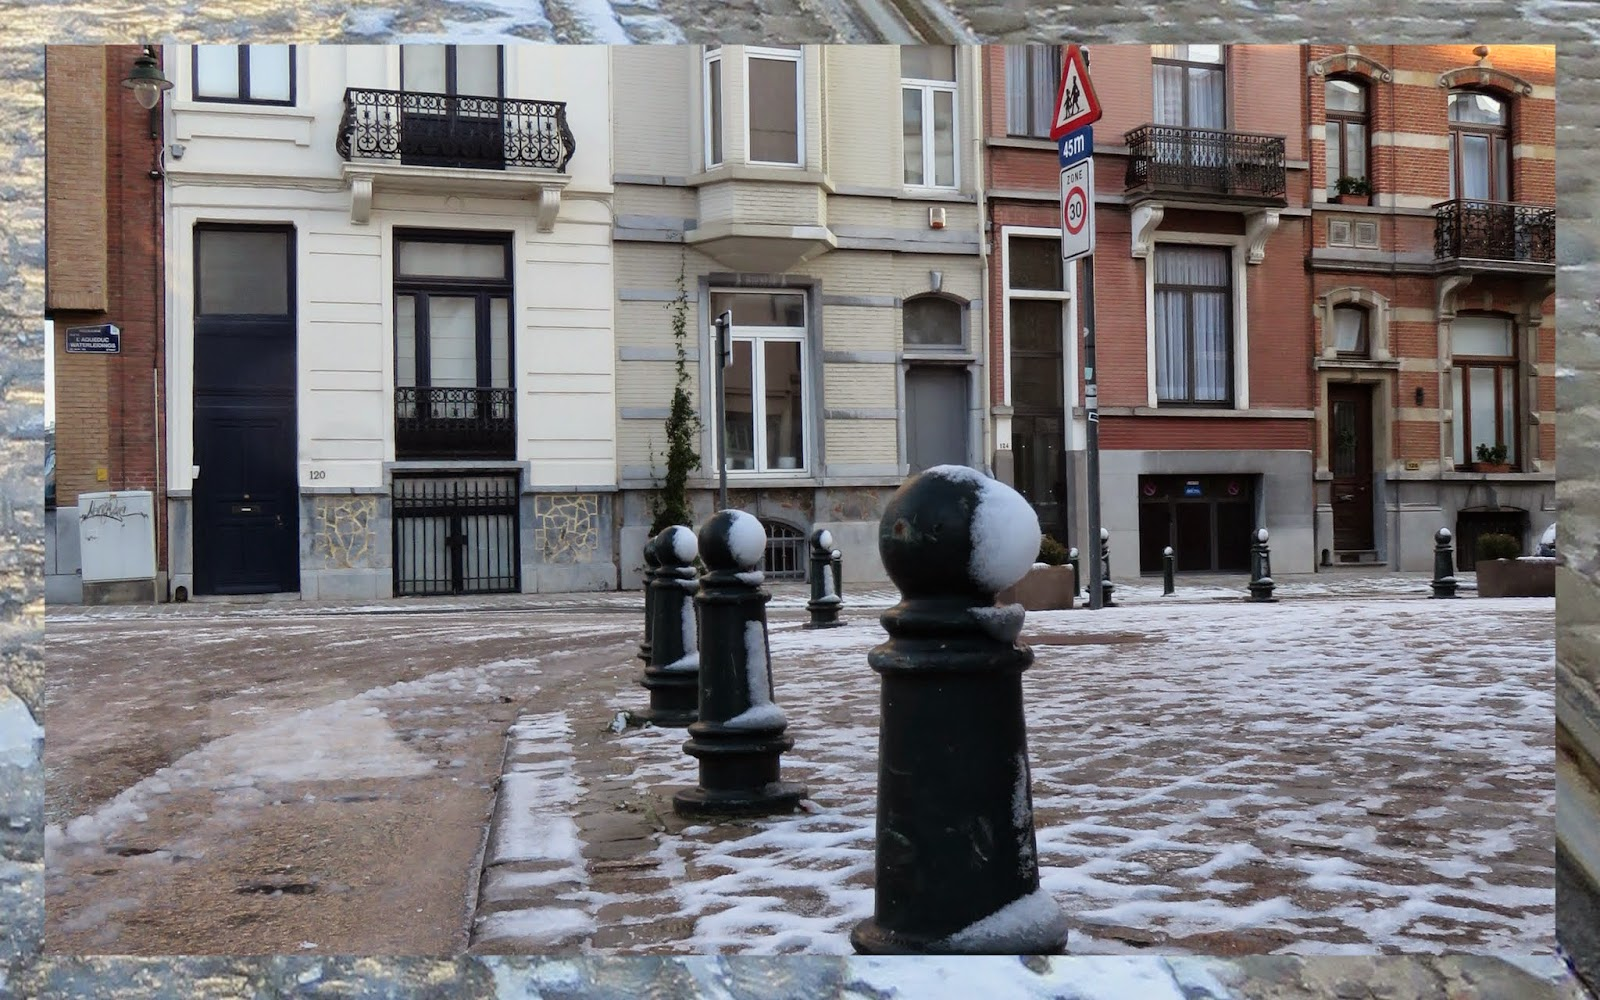 8 Reasons to Visit Belgium for a Christmas Holiday: Snowy Residential Street in Brussels